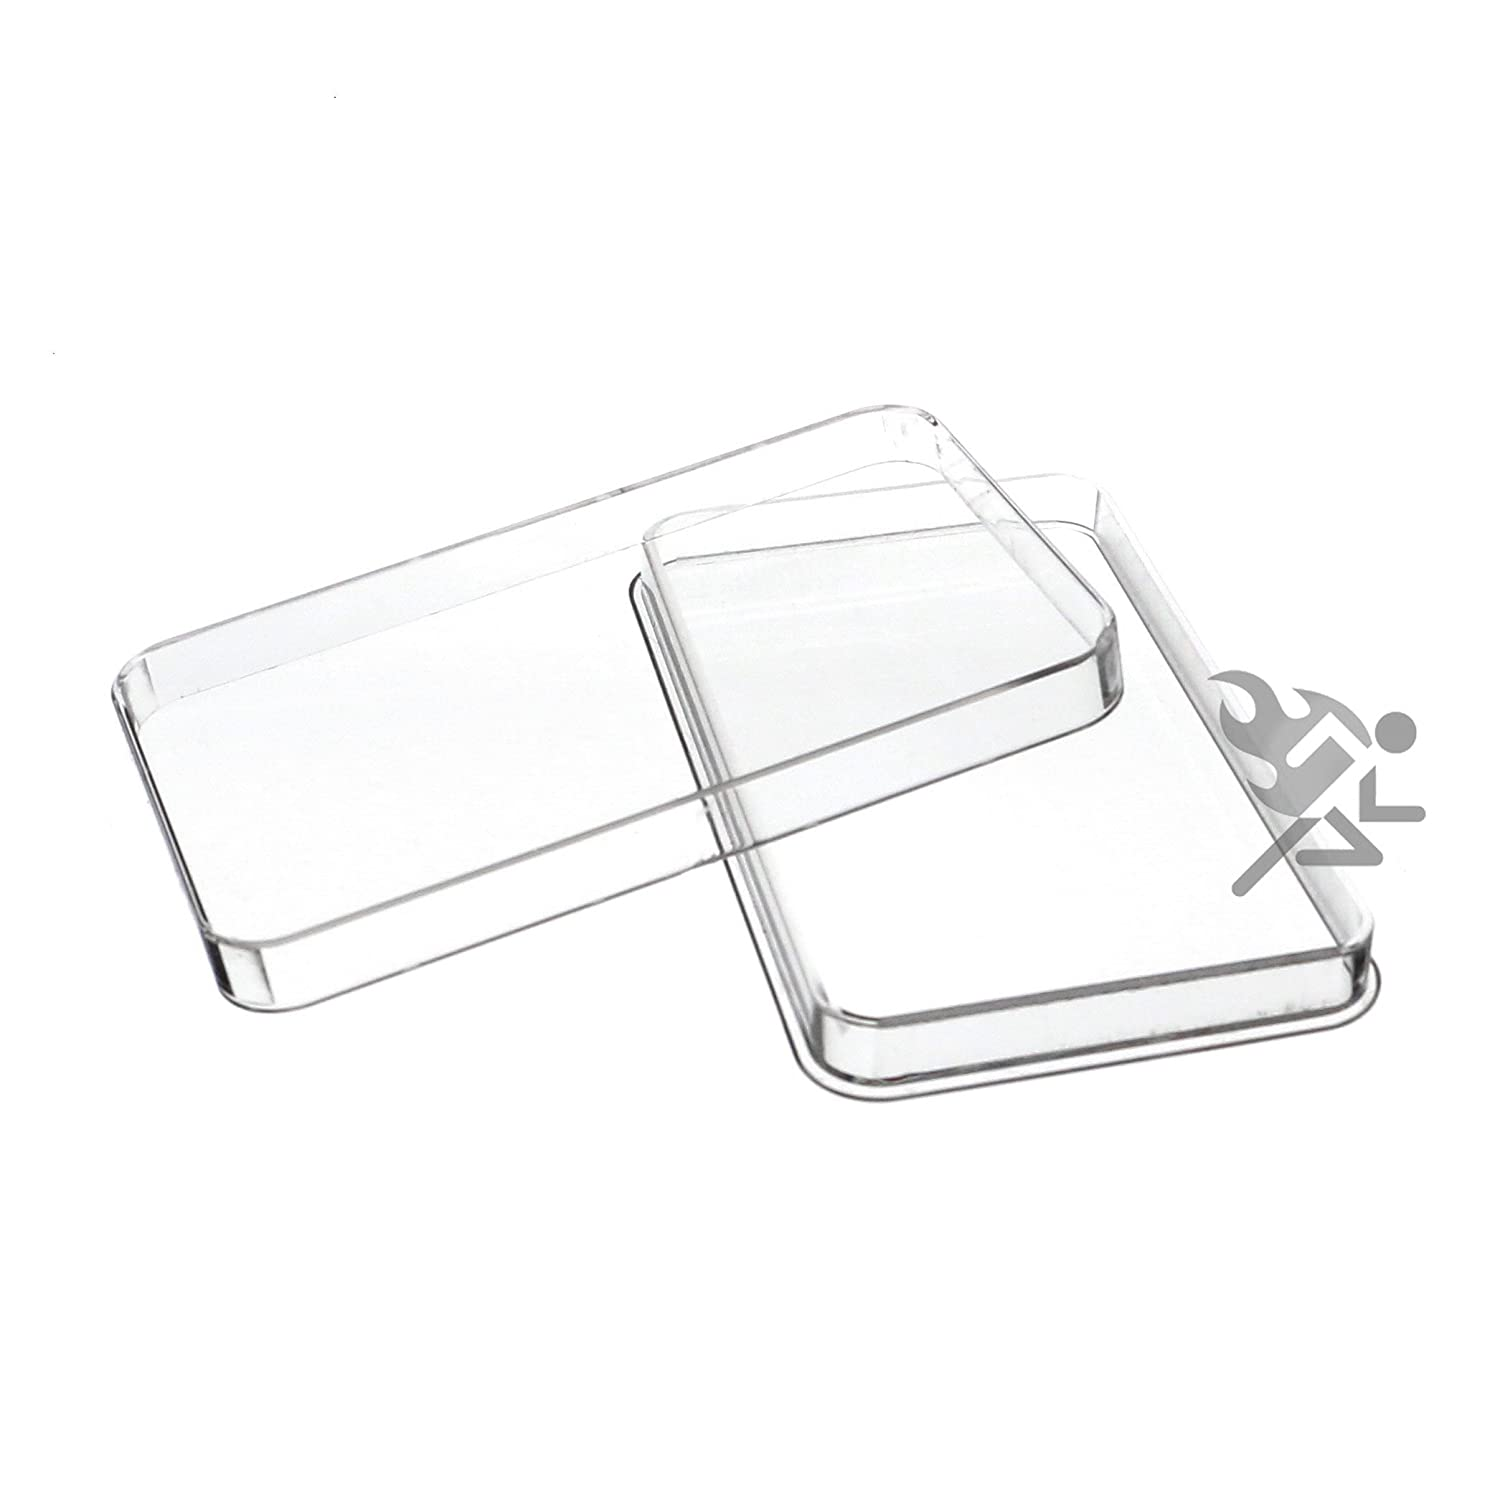 10oz Silver Bar Direct Fit Air-Tite Capsule Holder Qty: 2 Air-Tite Holders